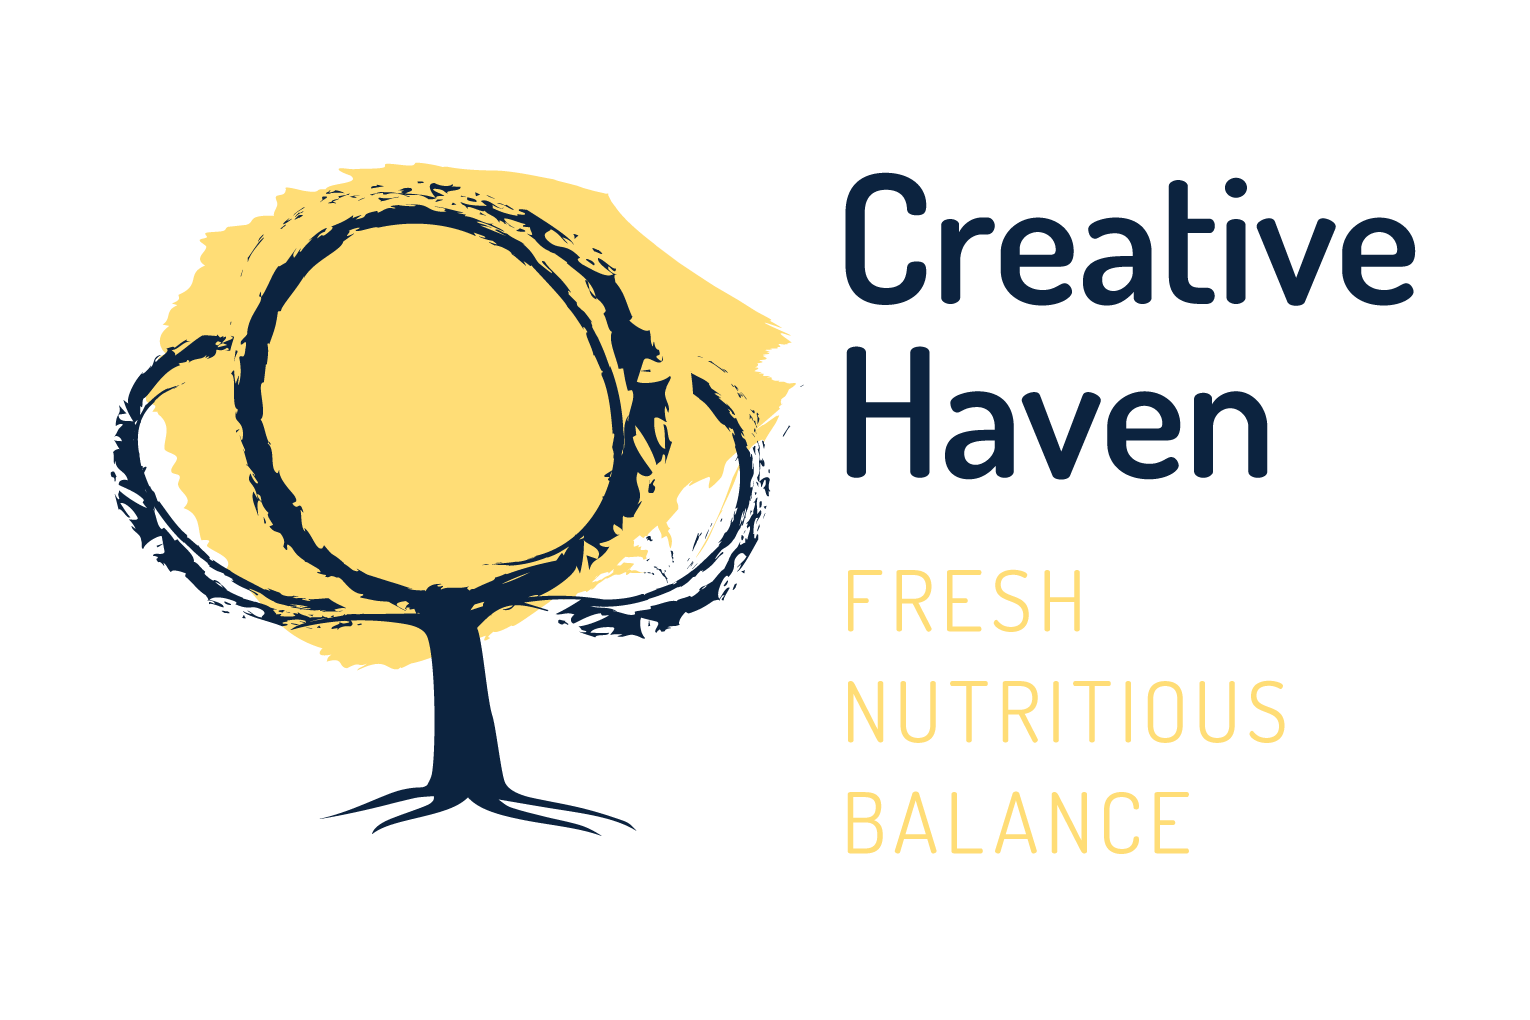 creative haven logo